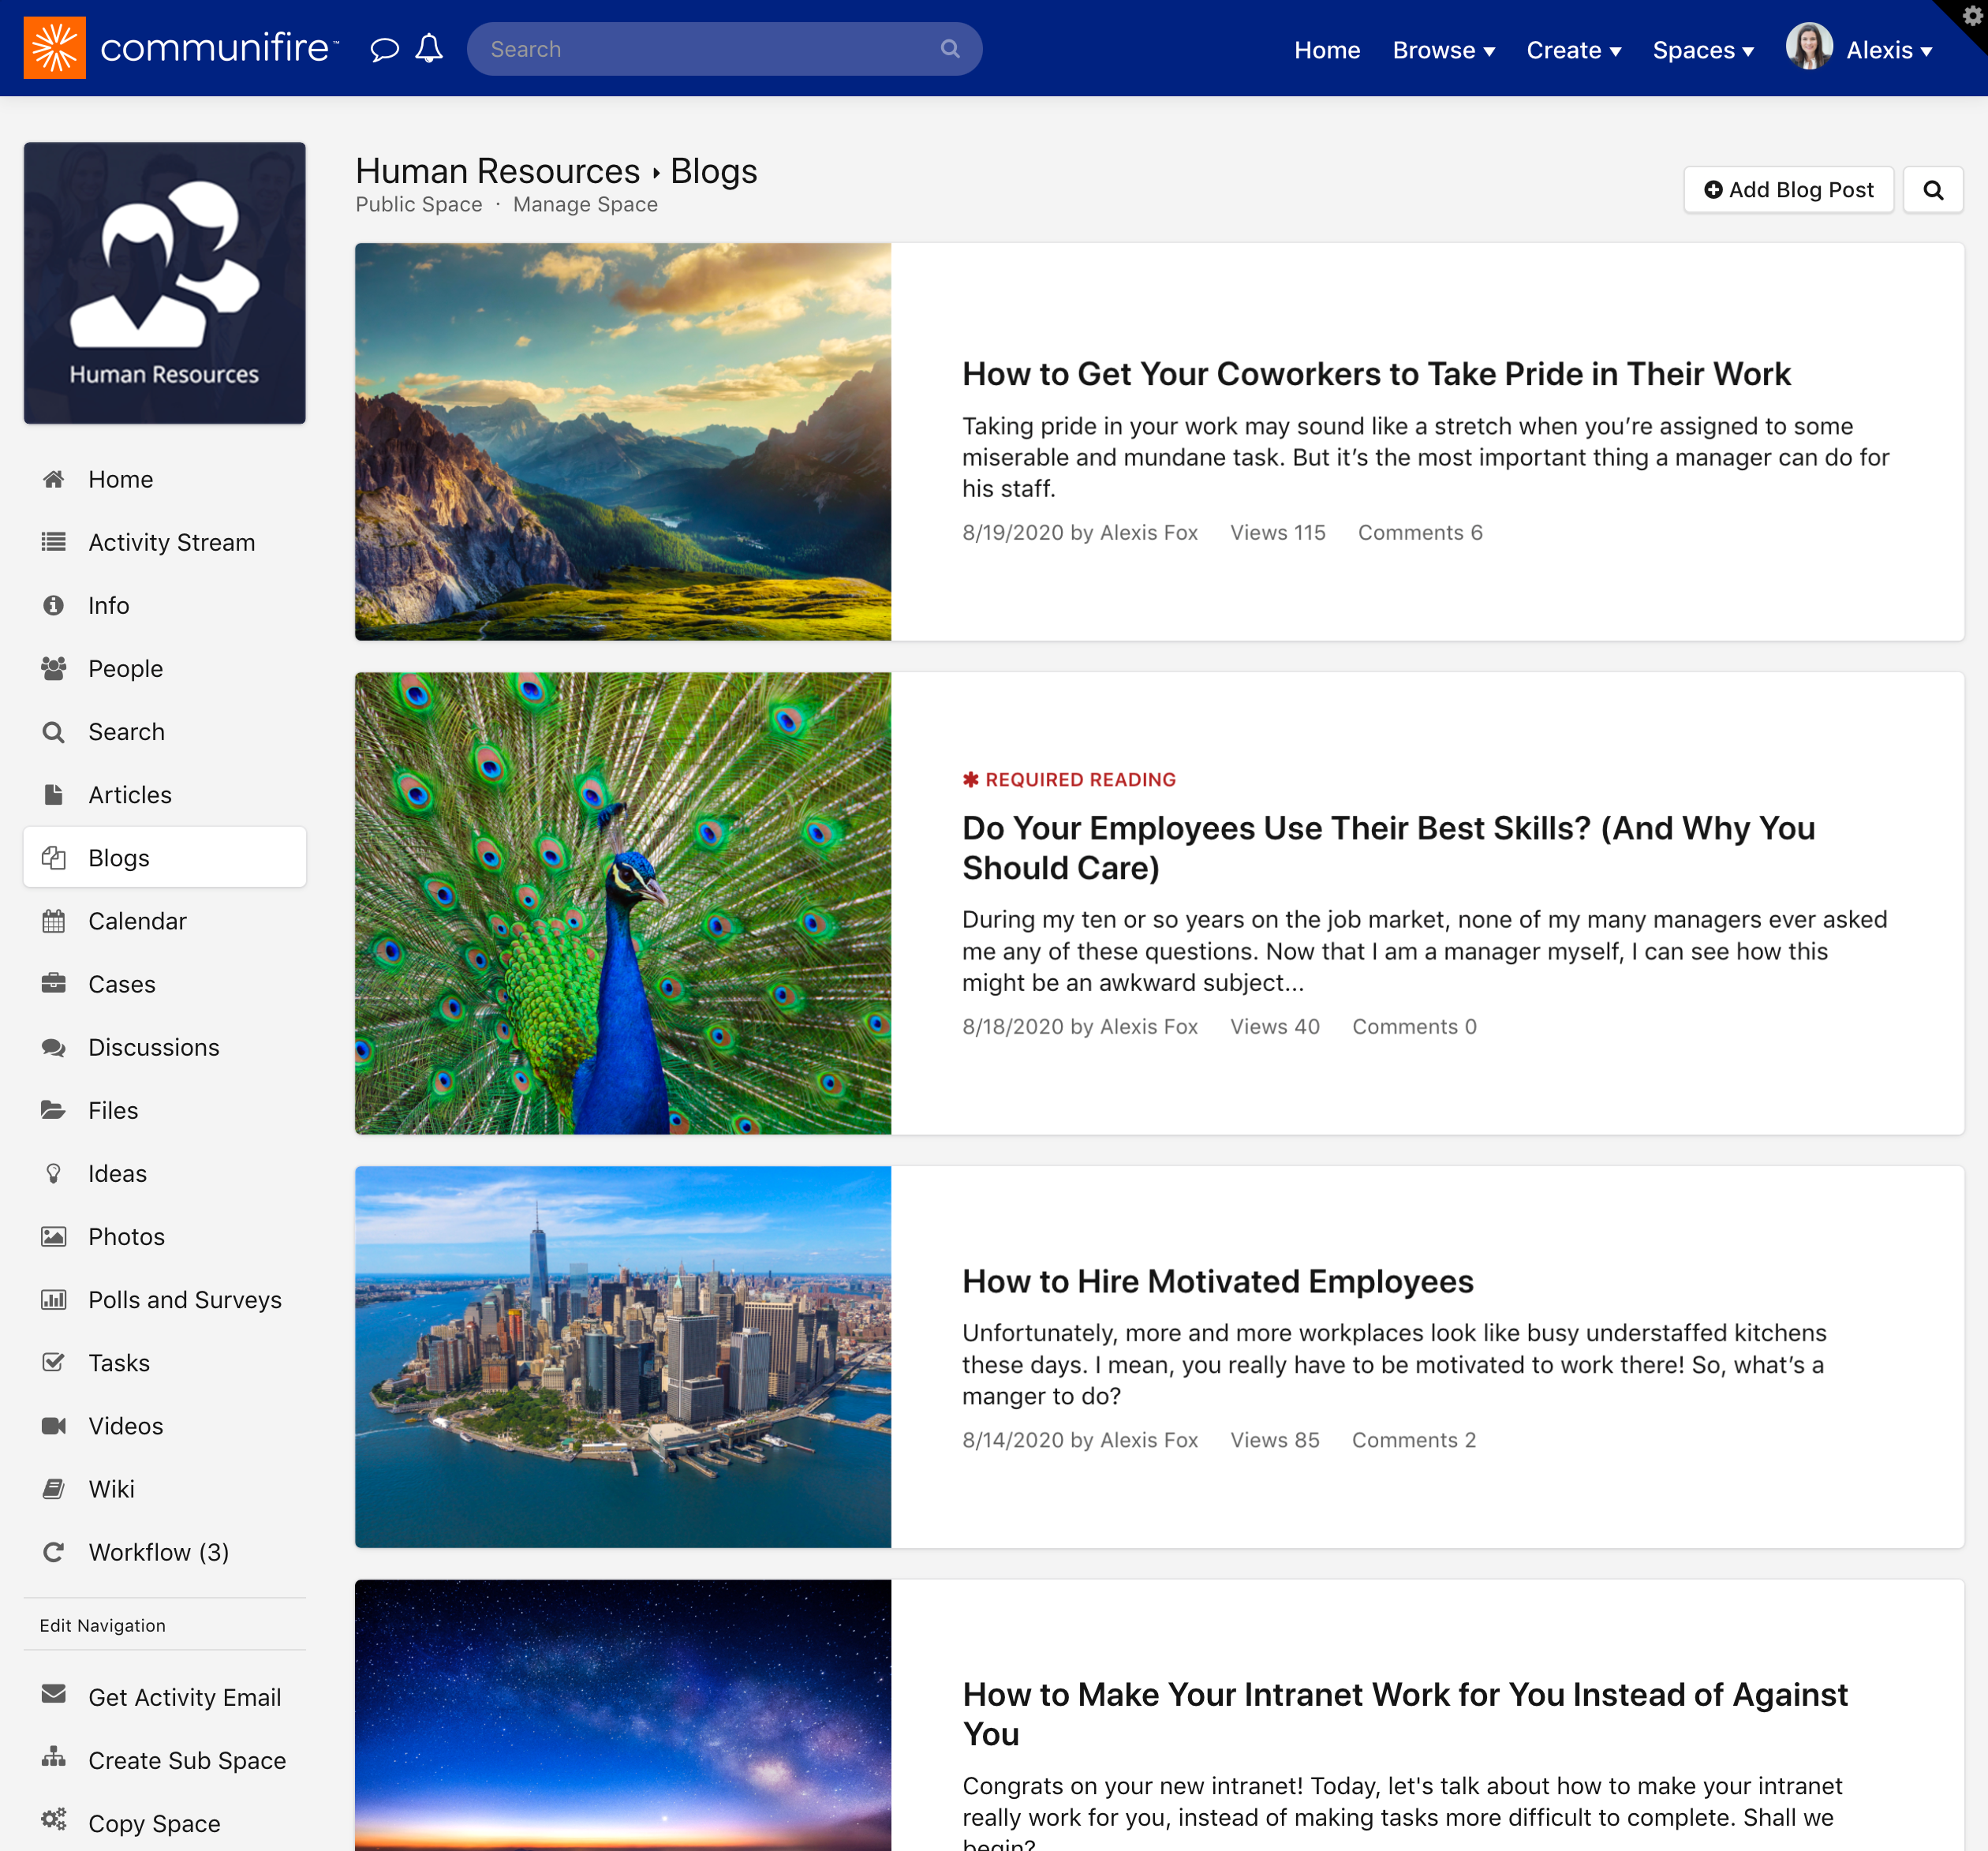 The blogs homepage